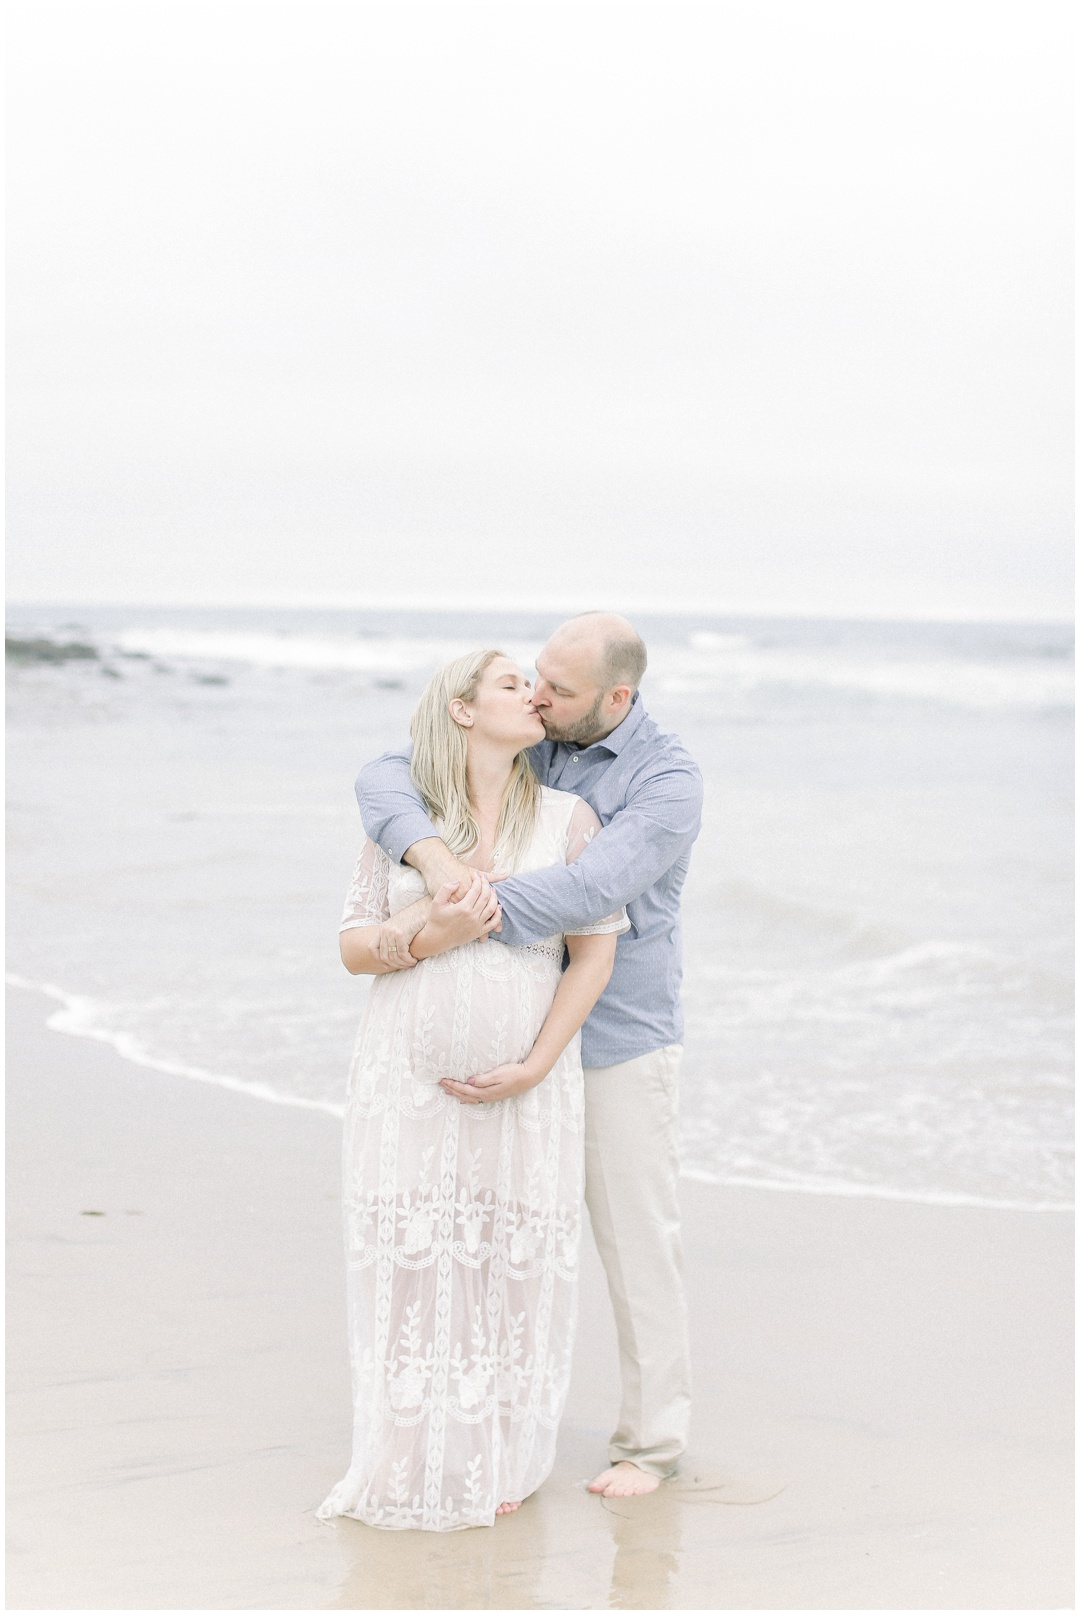 Newport_Beach_Newborn_Light_Airy_Natural_Photographer_Newport_Beach_Photographer_Orange_County_Family_Photographer_Cori_Kleckner_Photography_Newport_Beach_Photographer_Marisa_Podesto_Todd_Podesto__3970.jpg